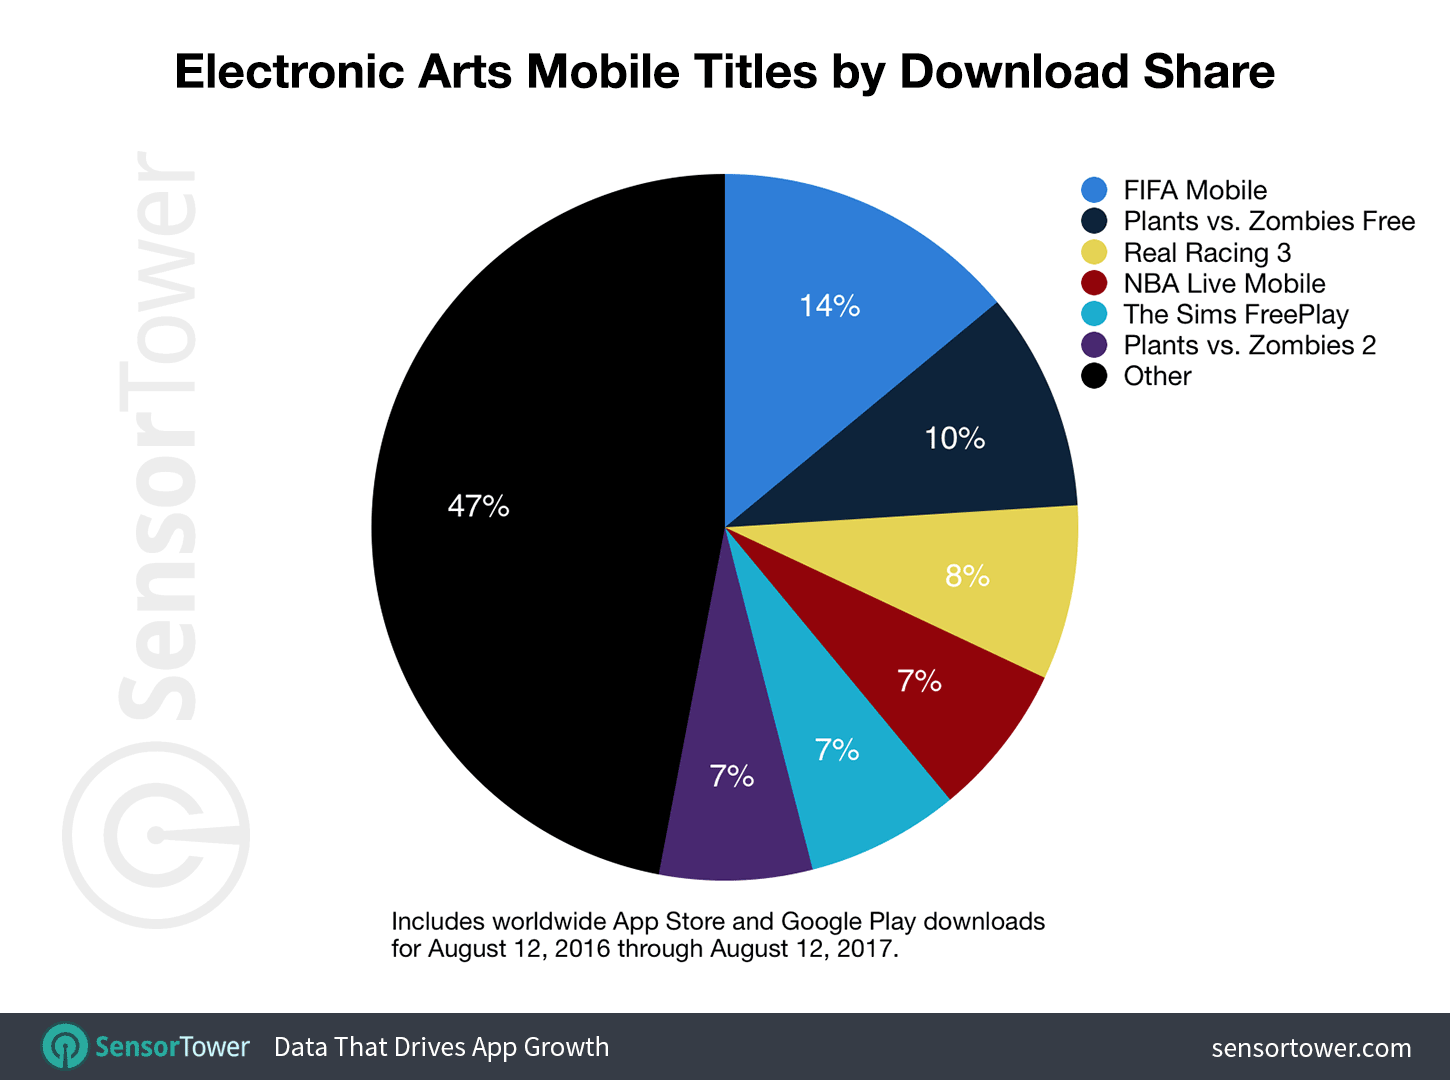 The broadness of EA's portfolio is in full display when looking at the downloads. During the last 12 months FIFA Mobile was the biggest contributor of downloads as one of the biggest launches of 2016. What should be noted is how well the 'legacy' titles such as 7 year old Plants vs. Zombies, 6 year old Sims FreePlay and 5 year old Real Racing are still among the biggest contributors of downloads.